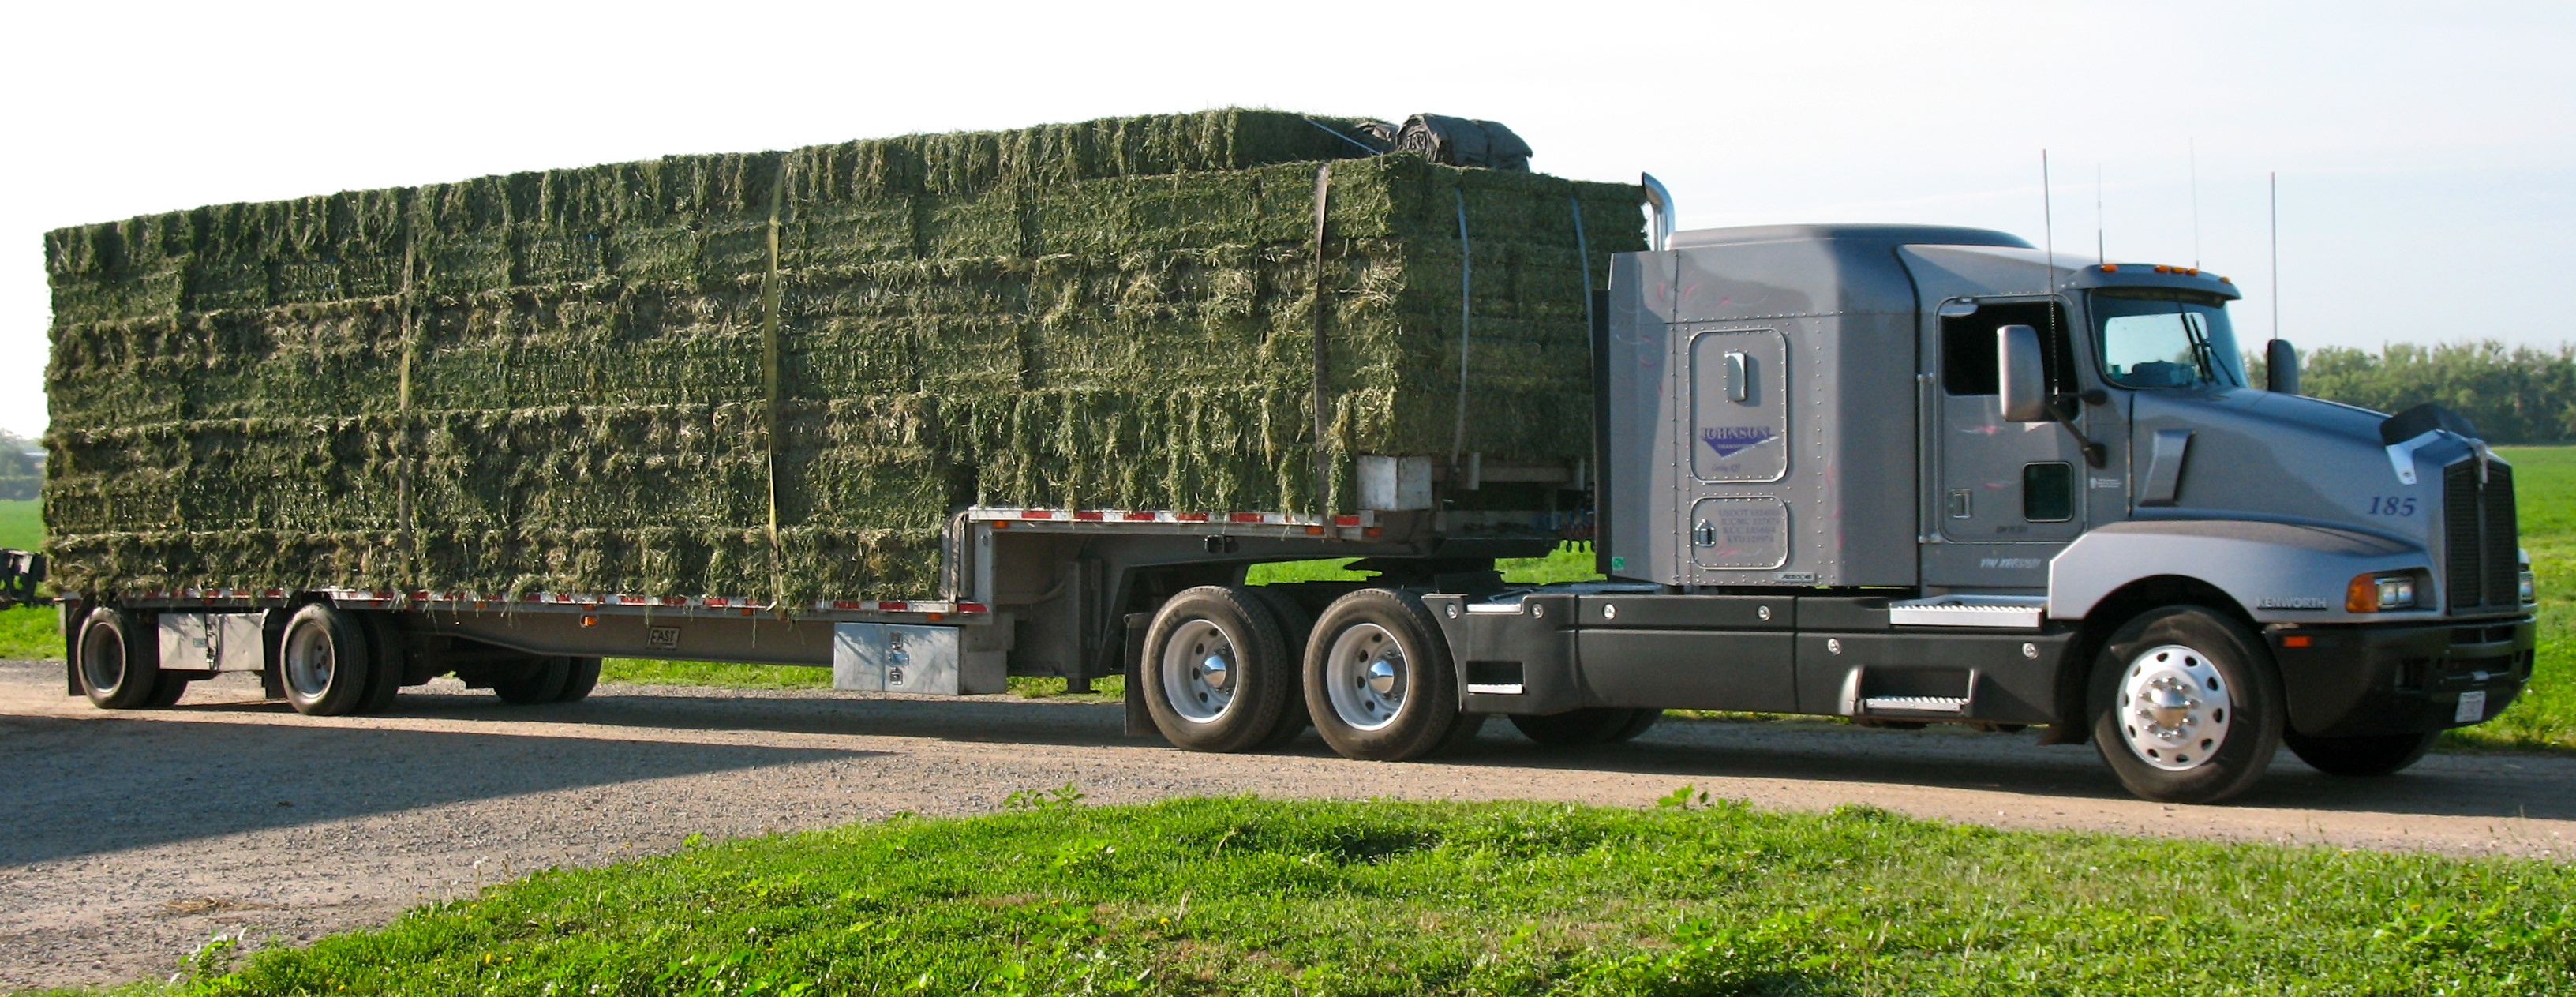 flatbed-truck-loaded-alfalfa-bales